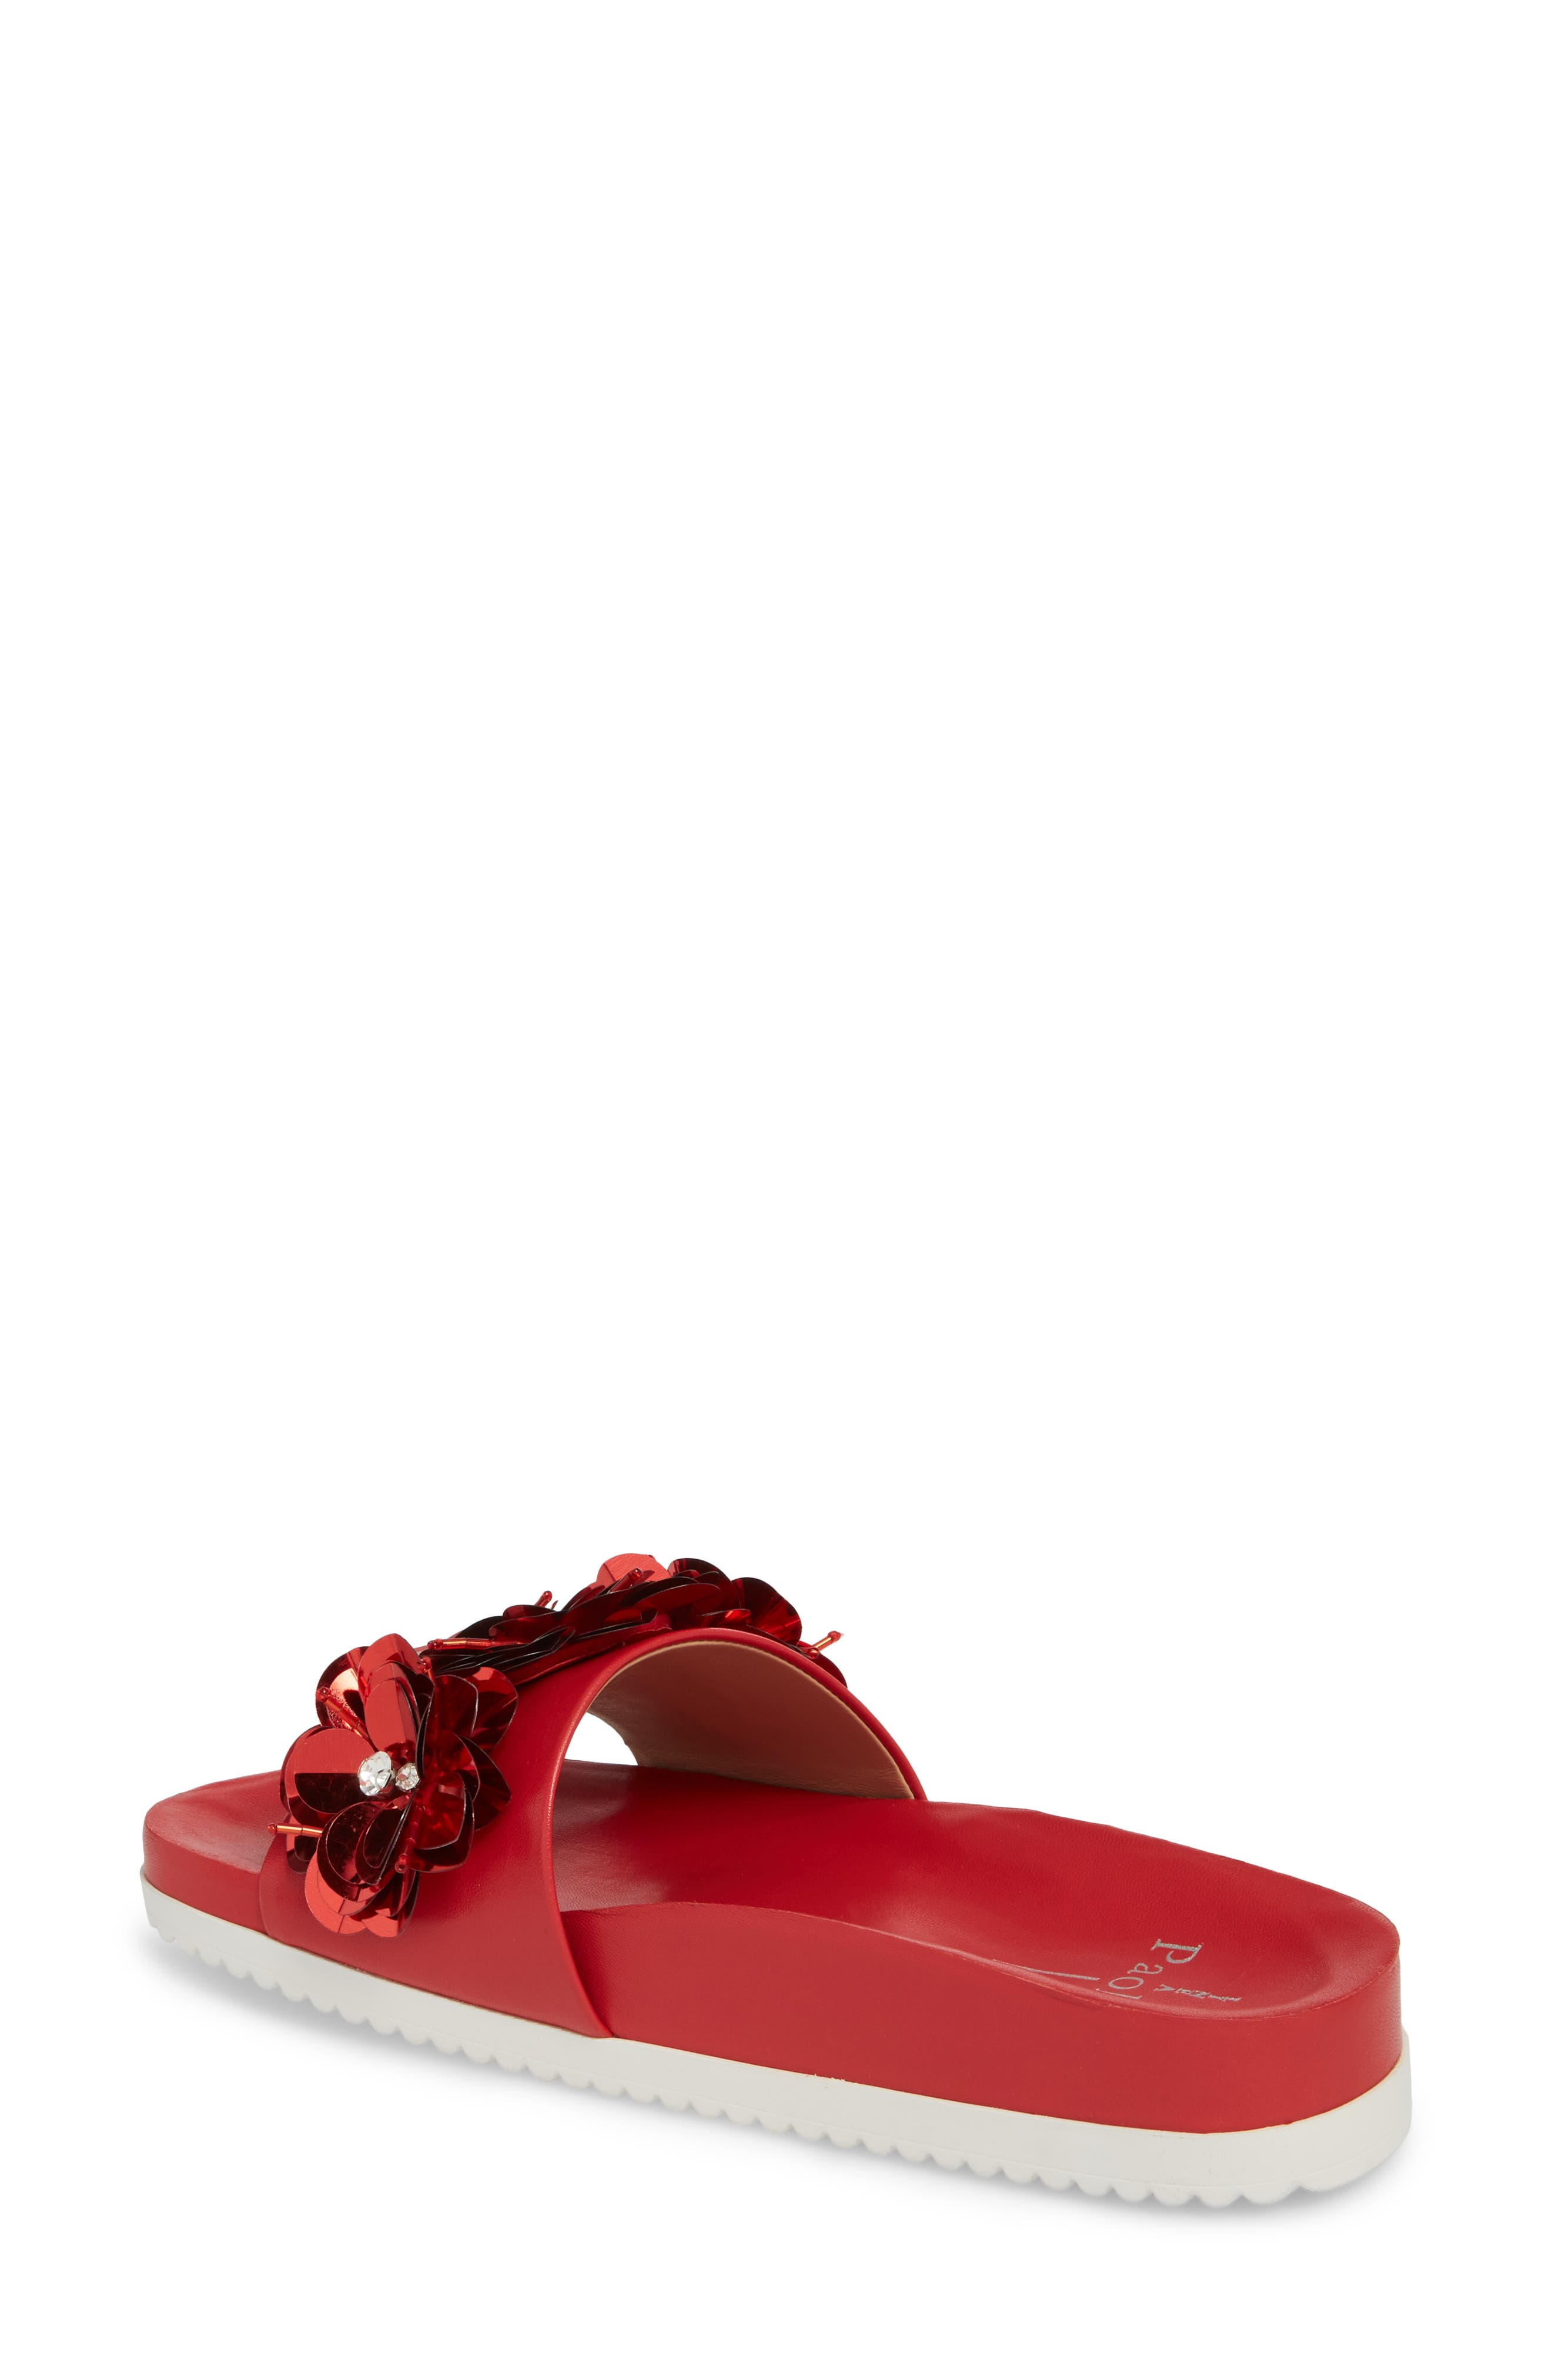 Lotus Embellished Flower Sandal Slide,                             Alternate thumbnail 2, color,                             Red Fabric